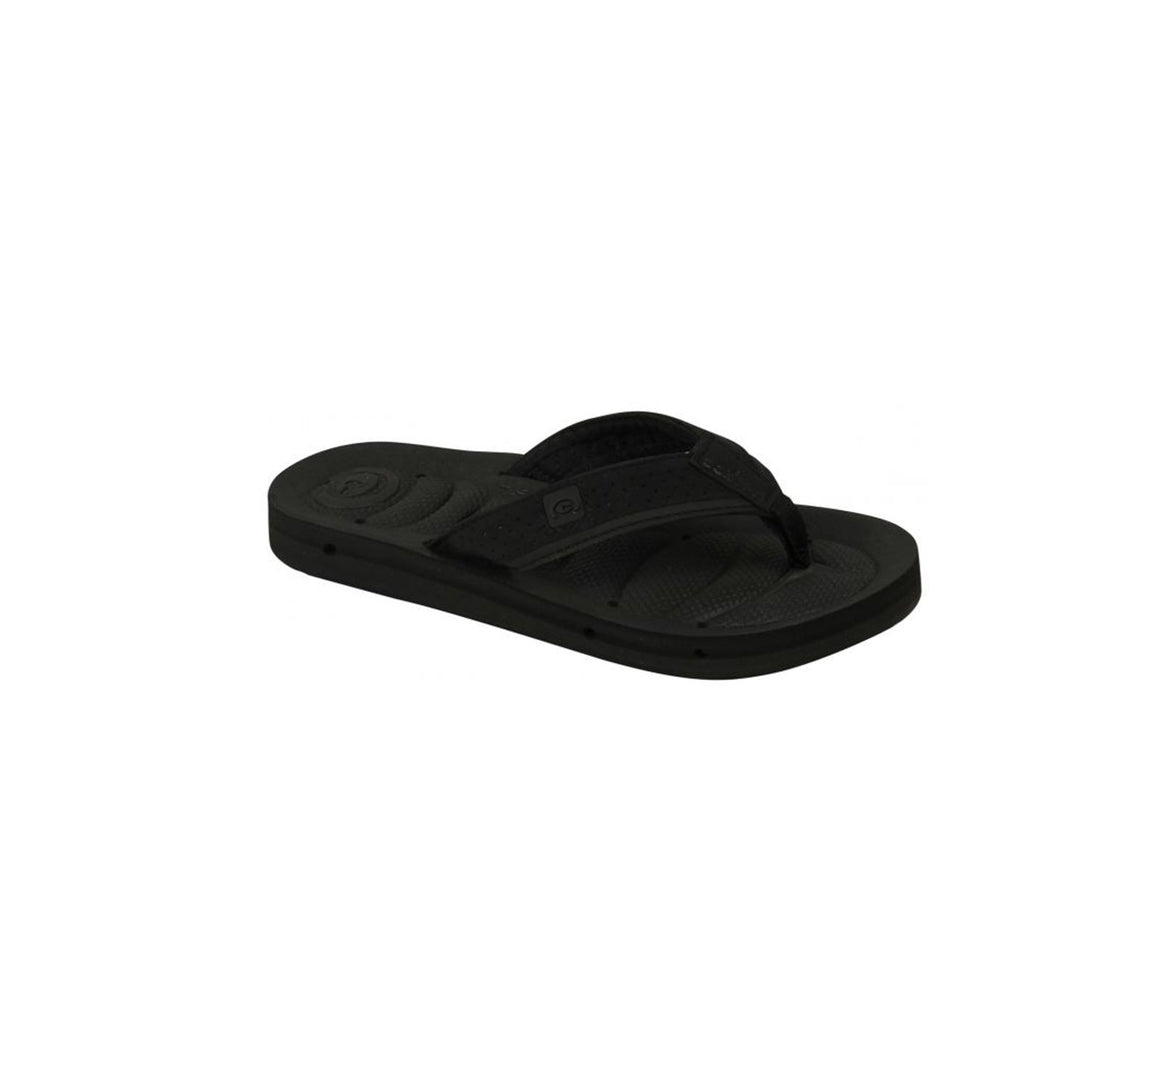 Cobian Kid's Draino Jr Flip Flop - Midnight DJR18-415 - ShoeShackOnline